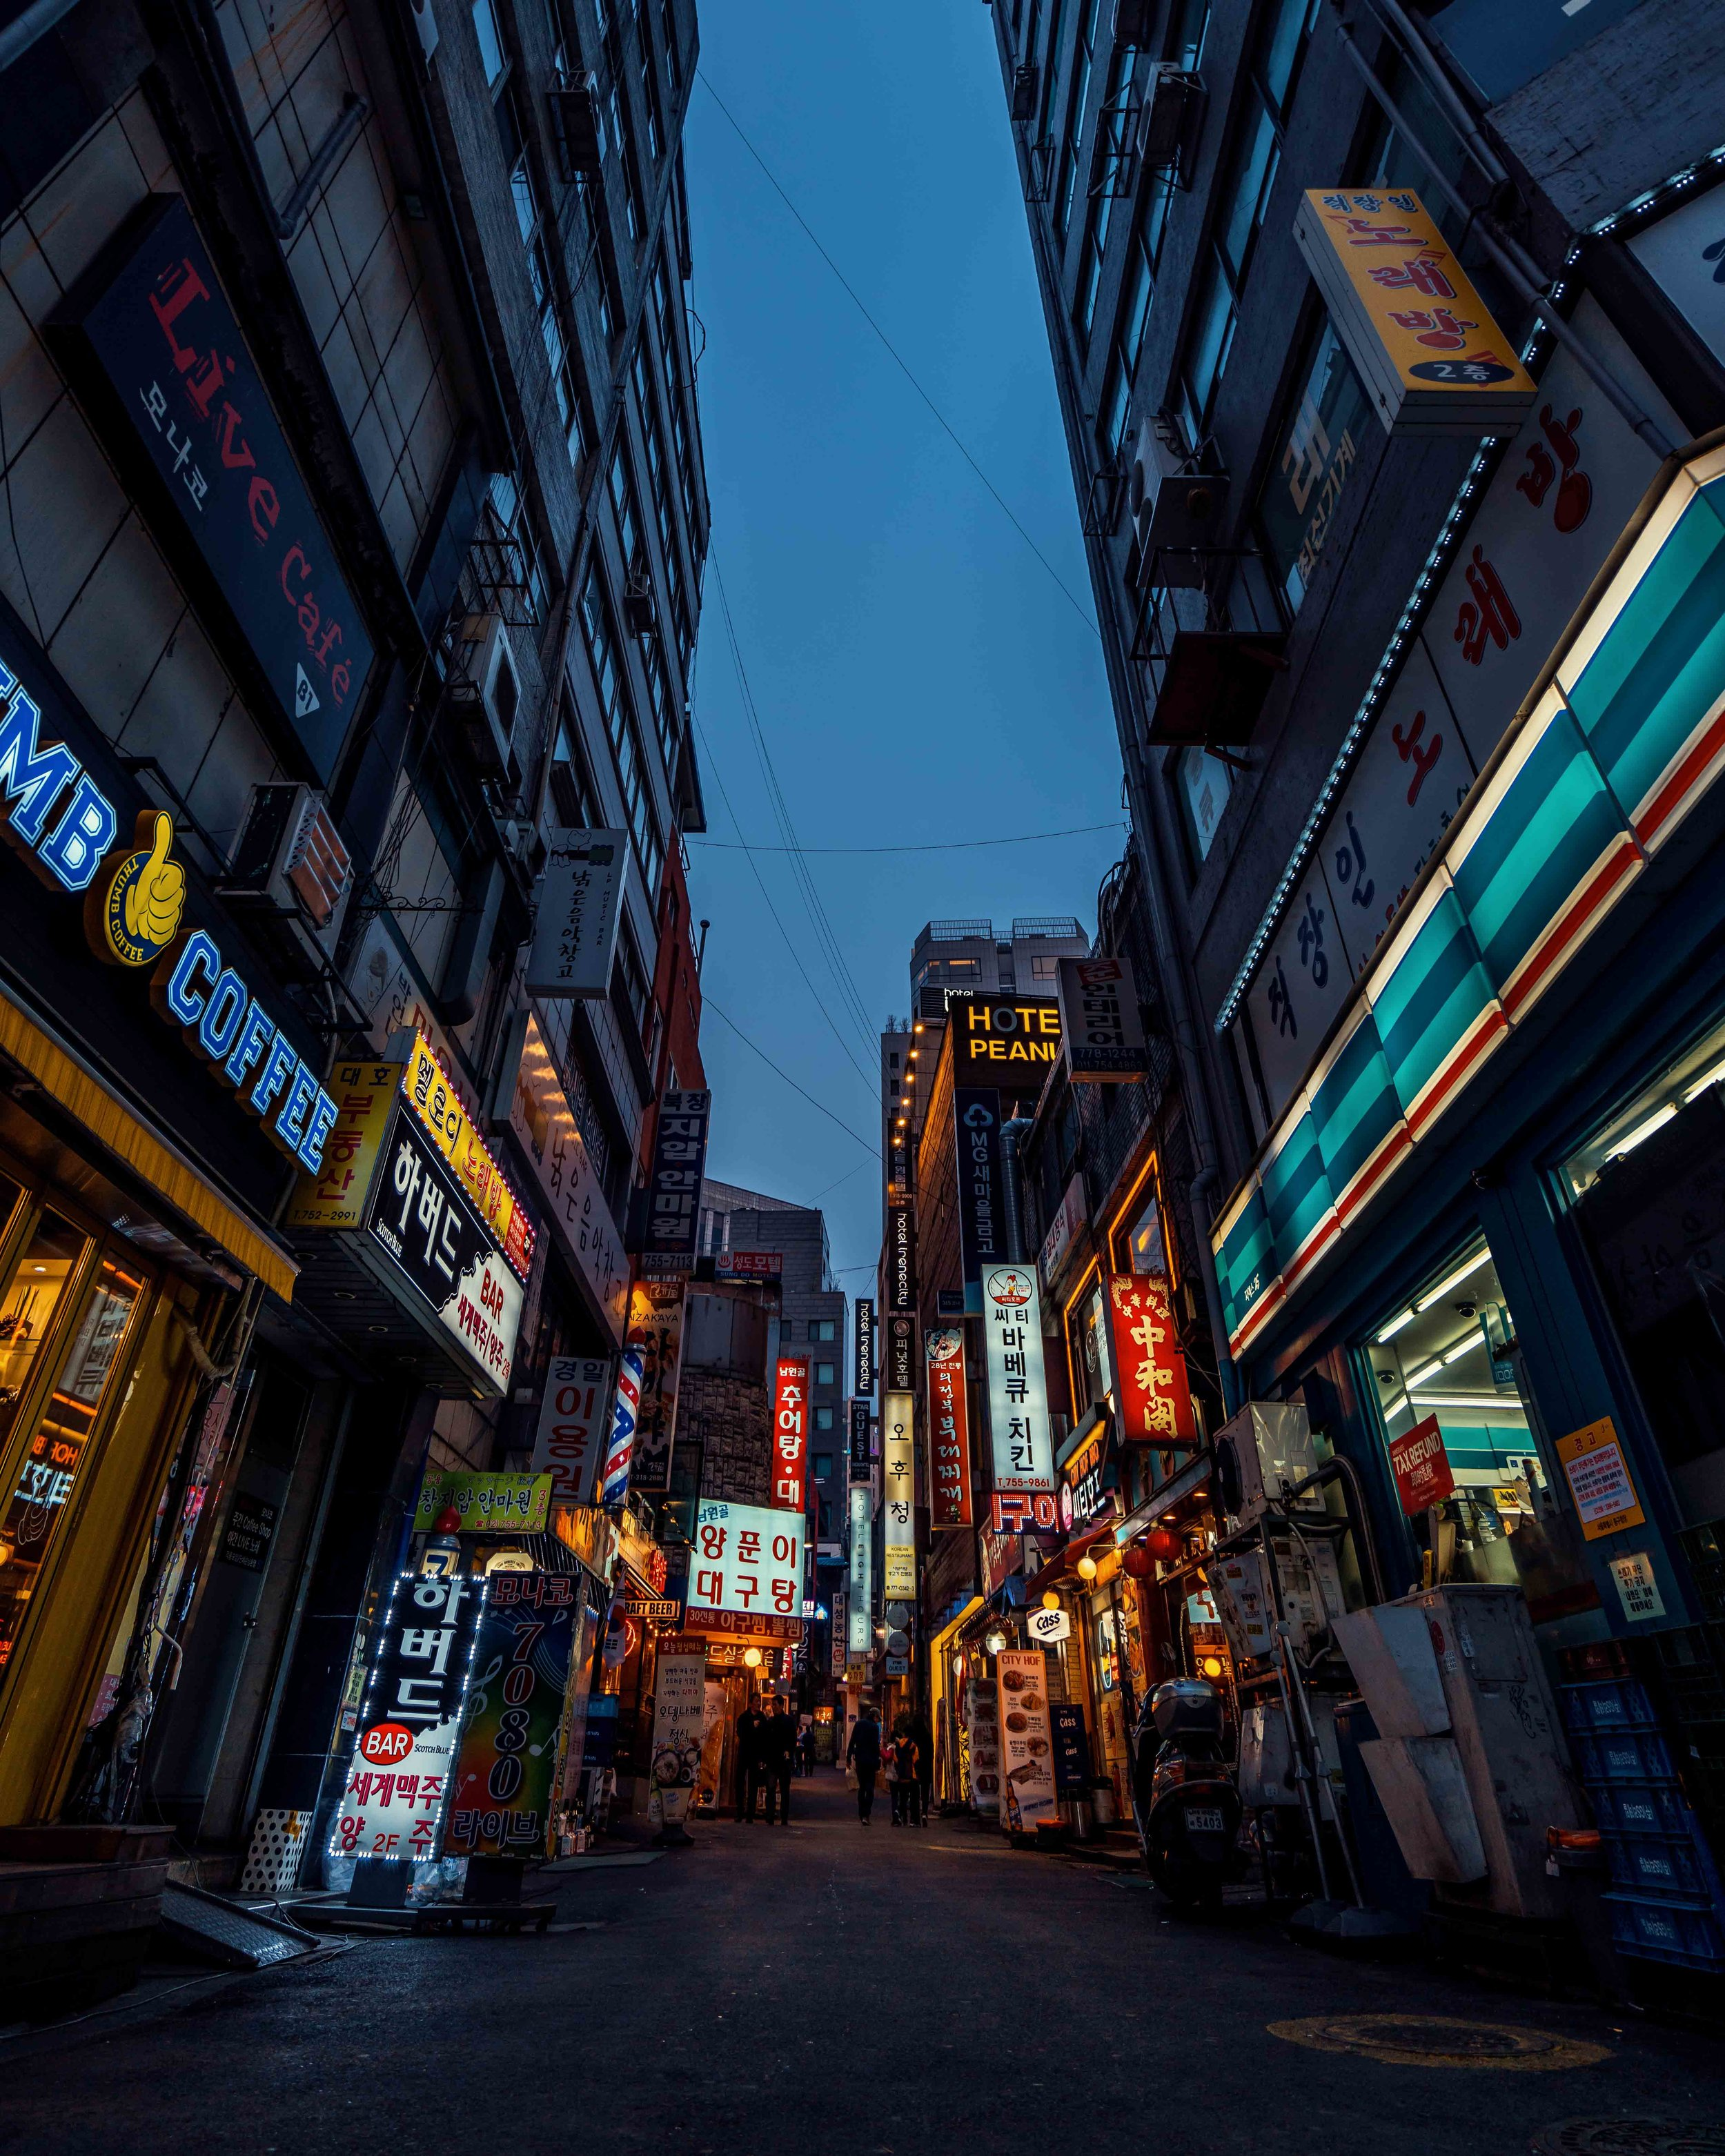 Streets of Seoul South Korea Night Blue Hour Korean Signs Alley